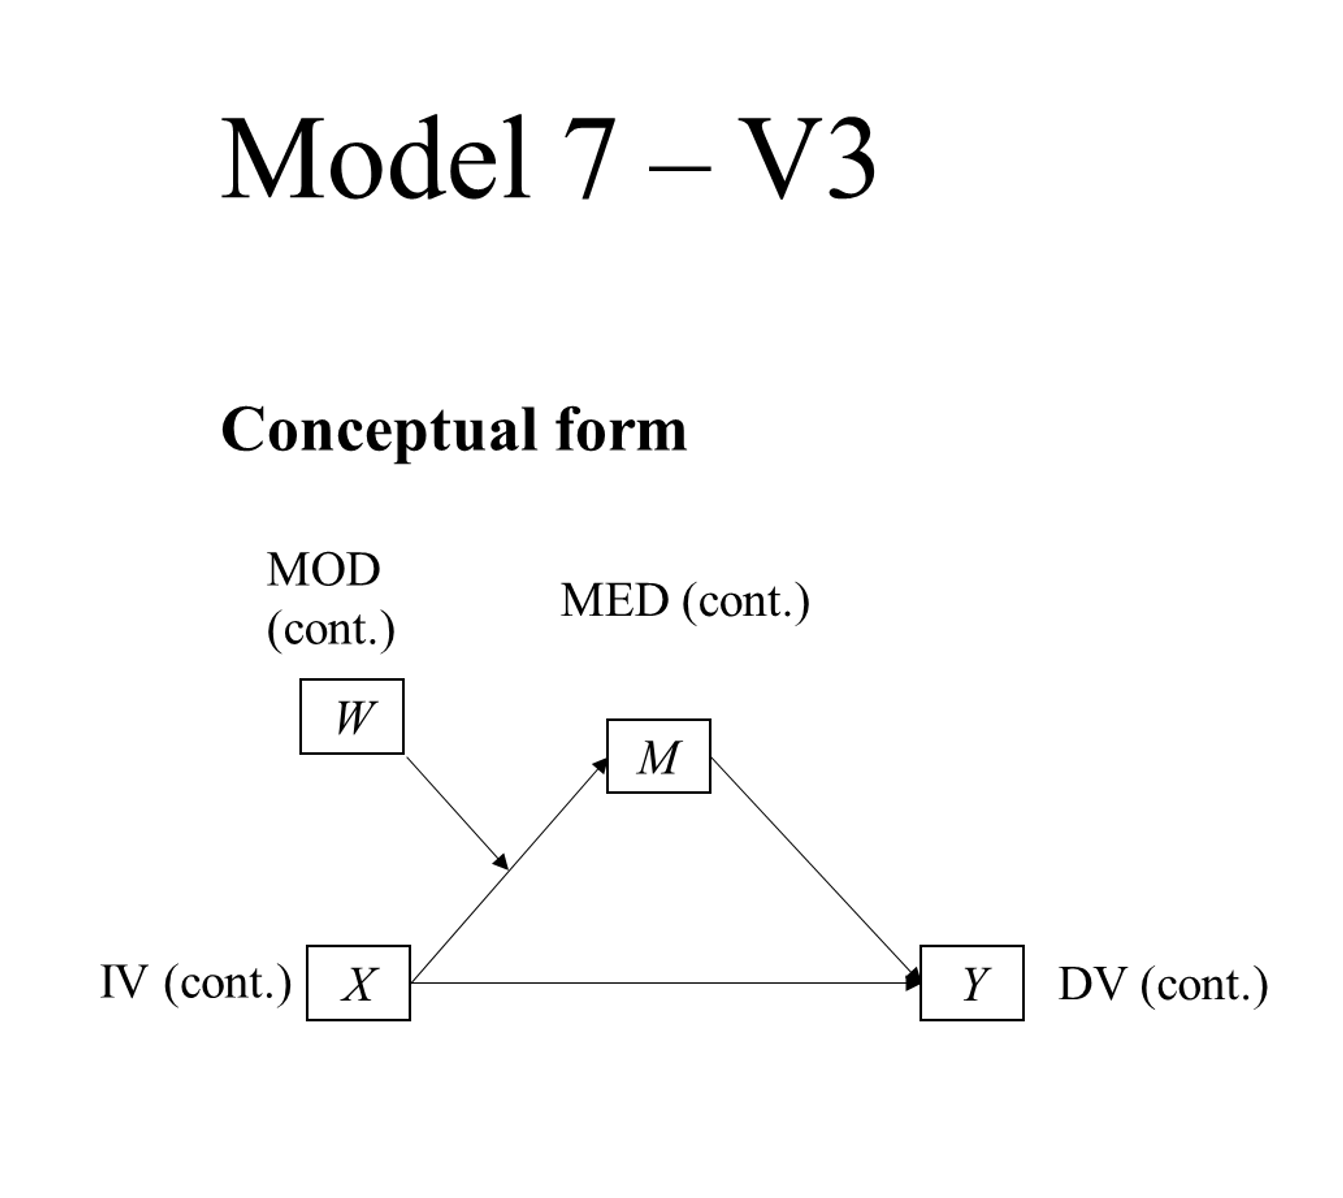 PRODUCT V3 Model 7 MAC Graphing moderated mediation - PROCESS